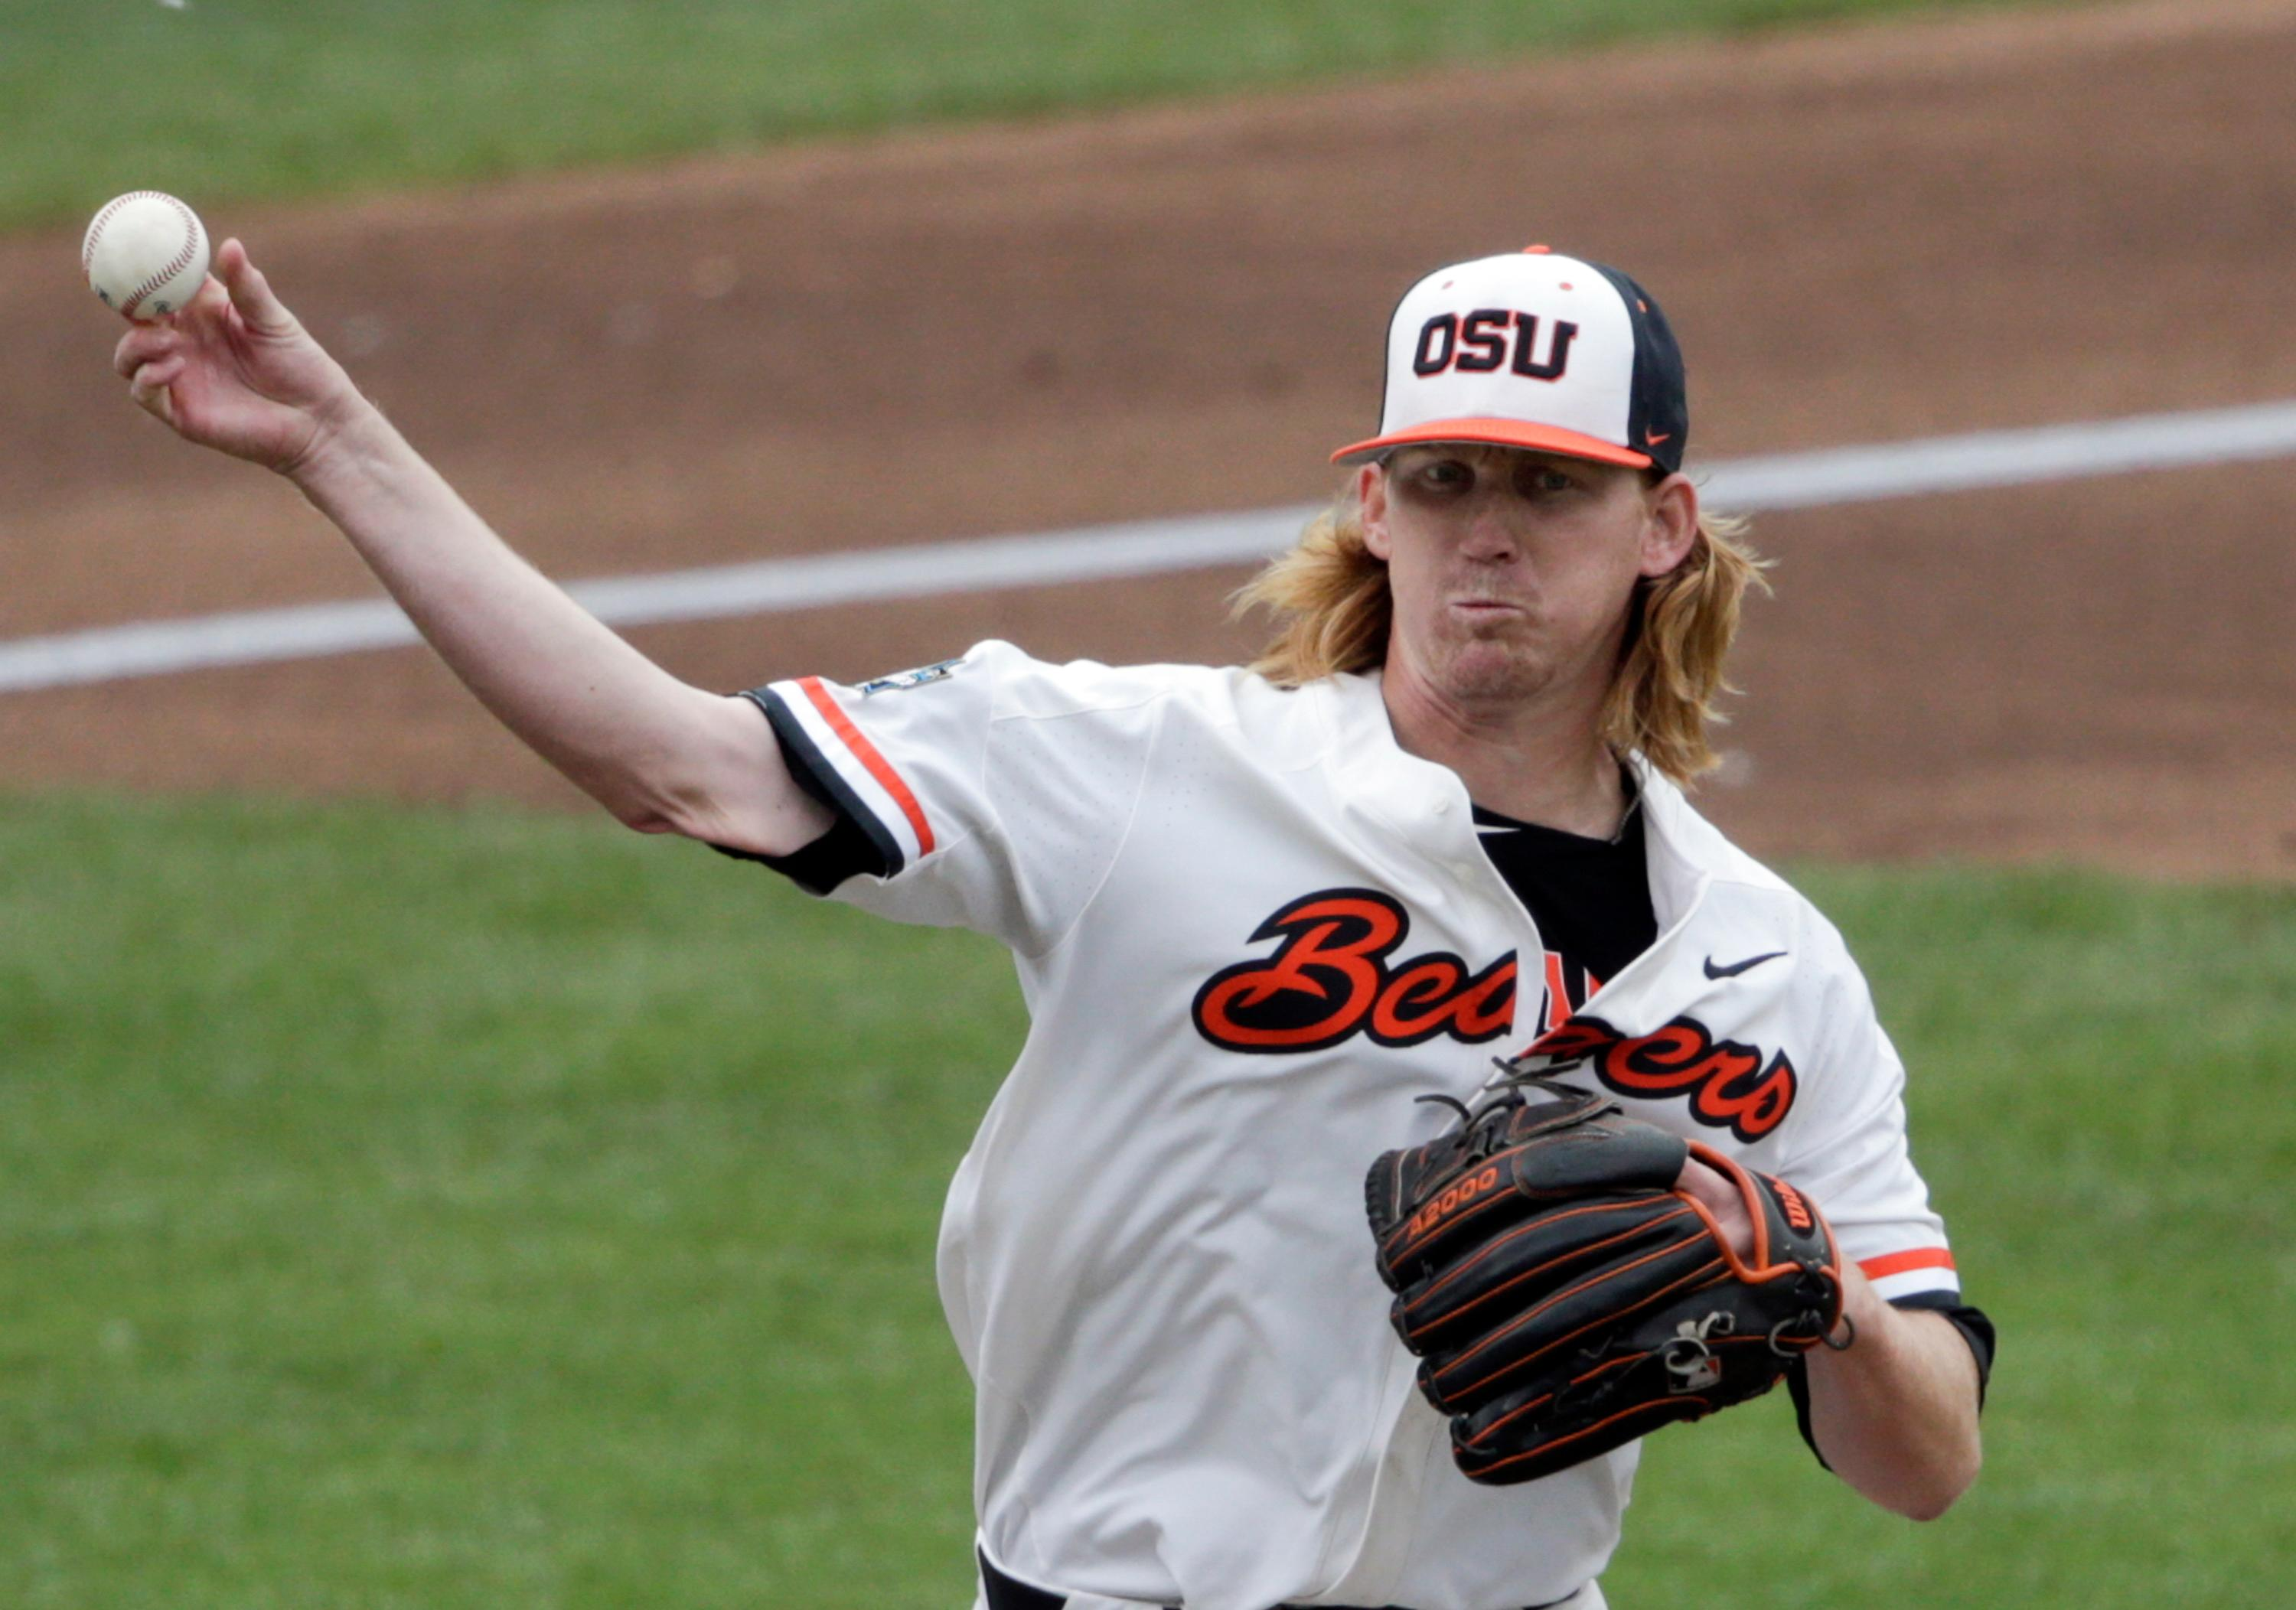 Oregon State pitcher Bryce Fehmel throws to first on a pickoff-attempt in the first inning of an NCAA College World Series baseball game against Mississippi State in Omaha, Neb., Friday, June 22, 2018. (AP Photo/Nati Harnik)